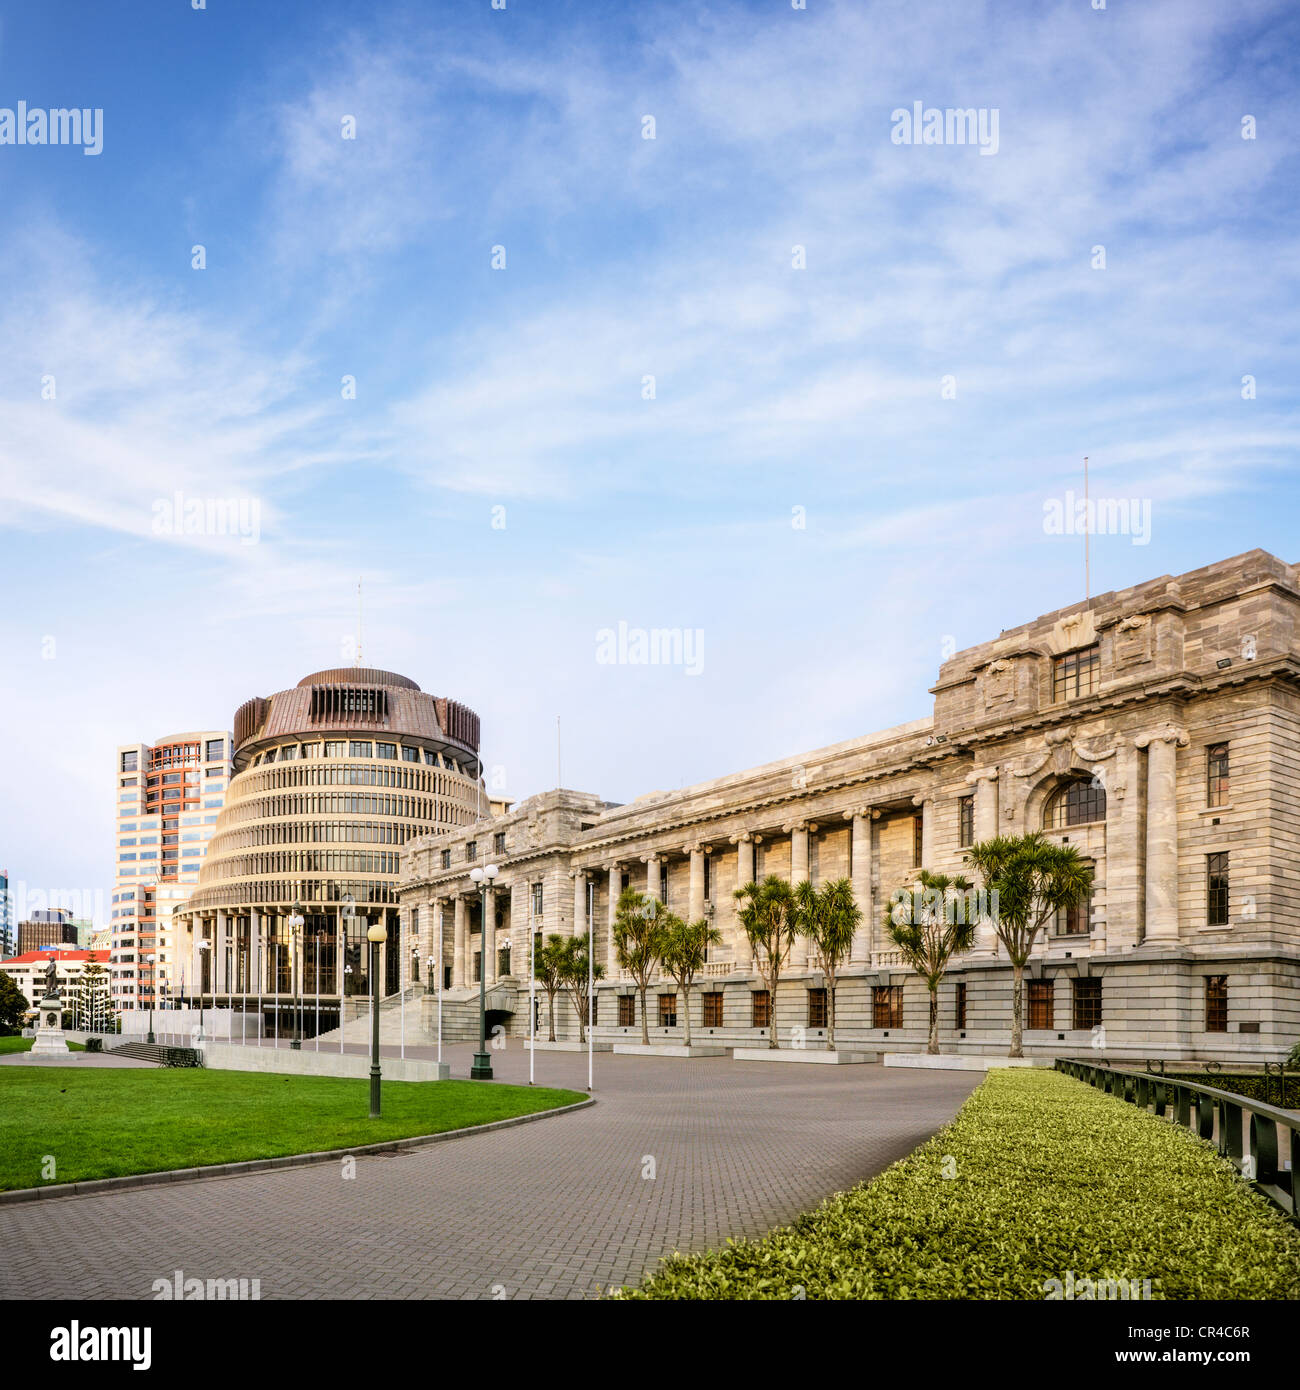 The Beehive, which is the executive offices of New Zealand's Parliament, and Parliament House. - Stock Image